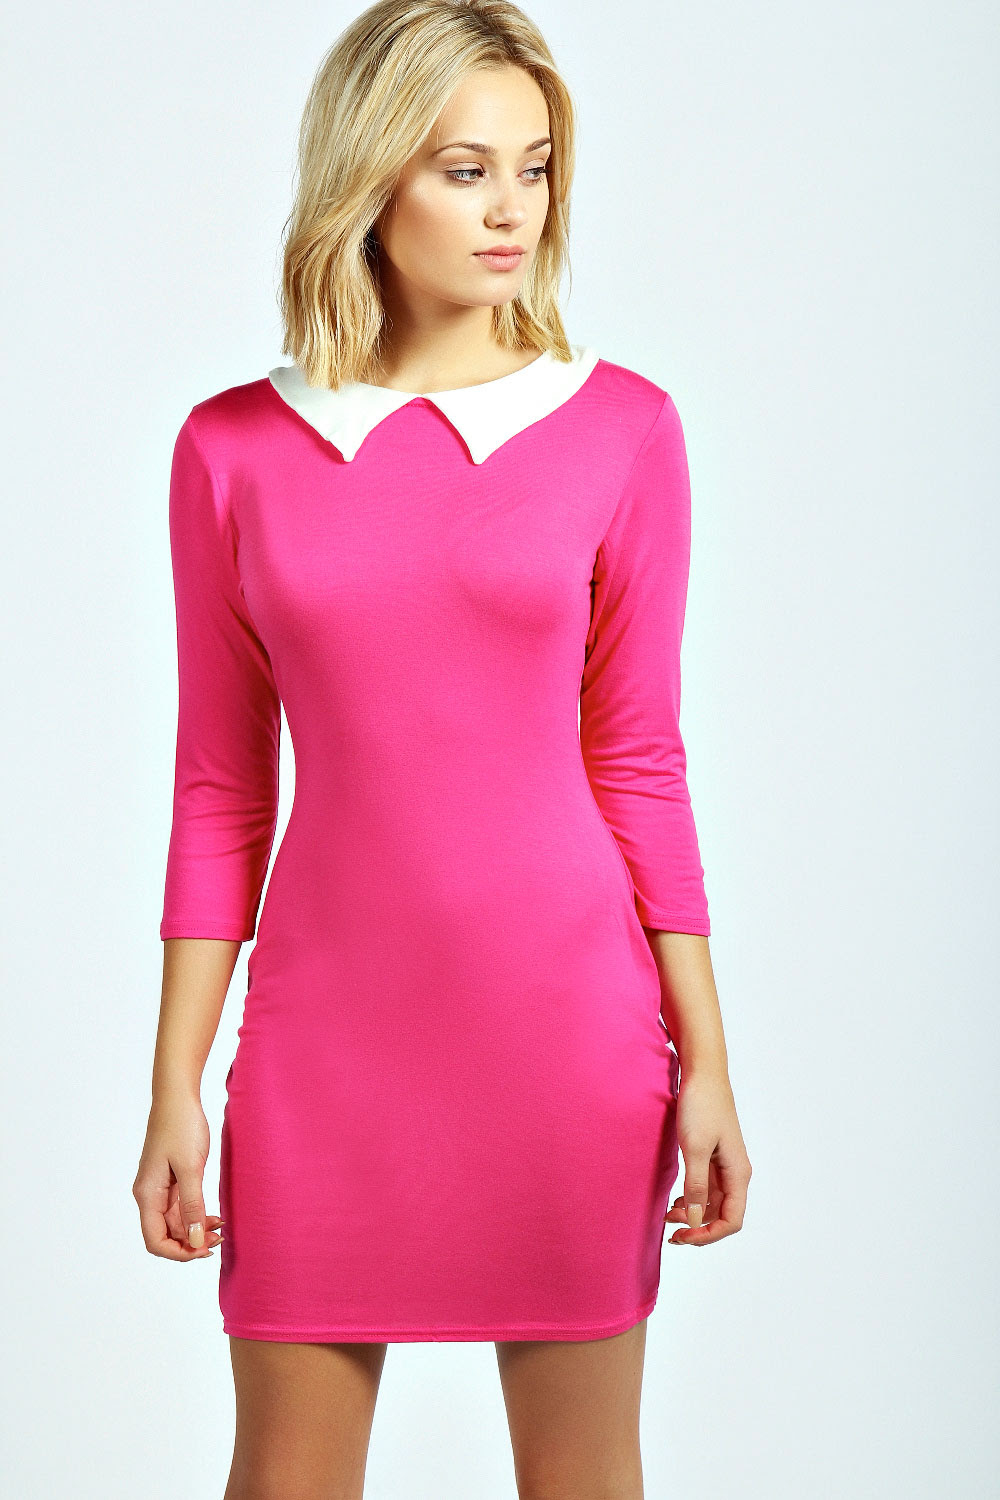 Bodycon dress with hip dip sleeves kitchen rental